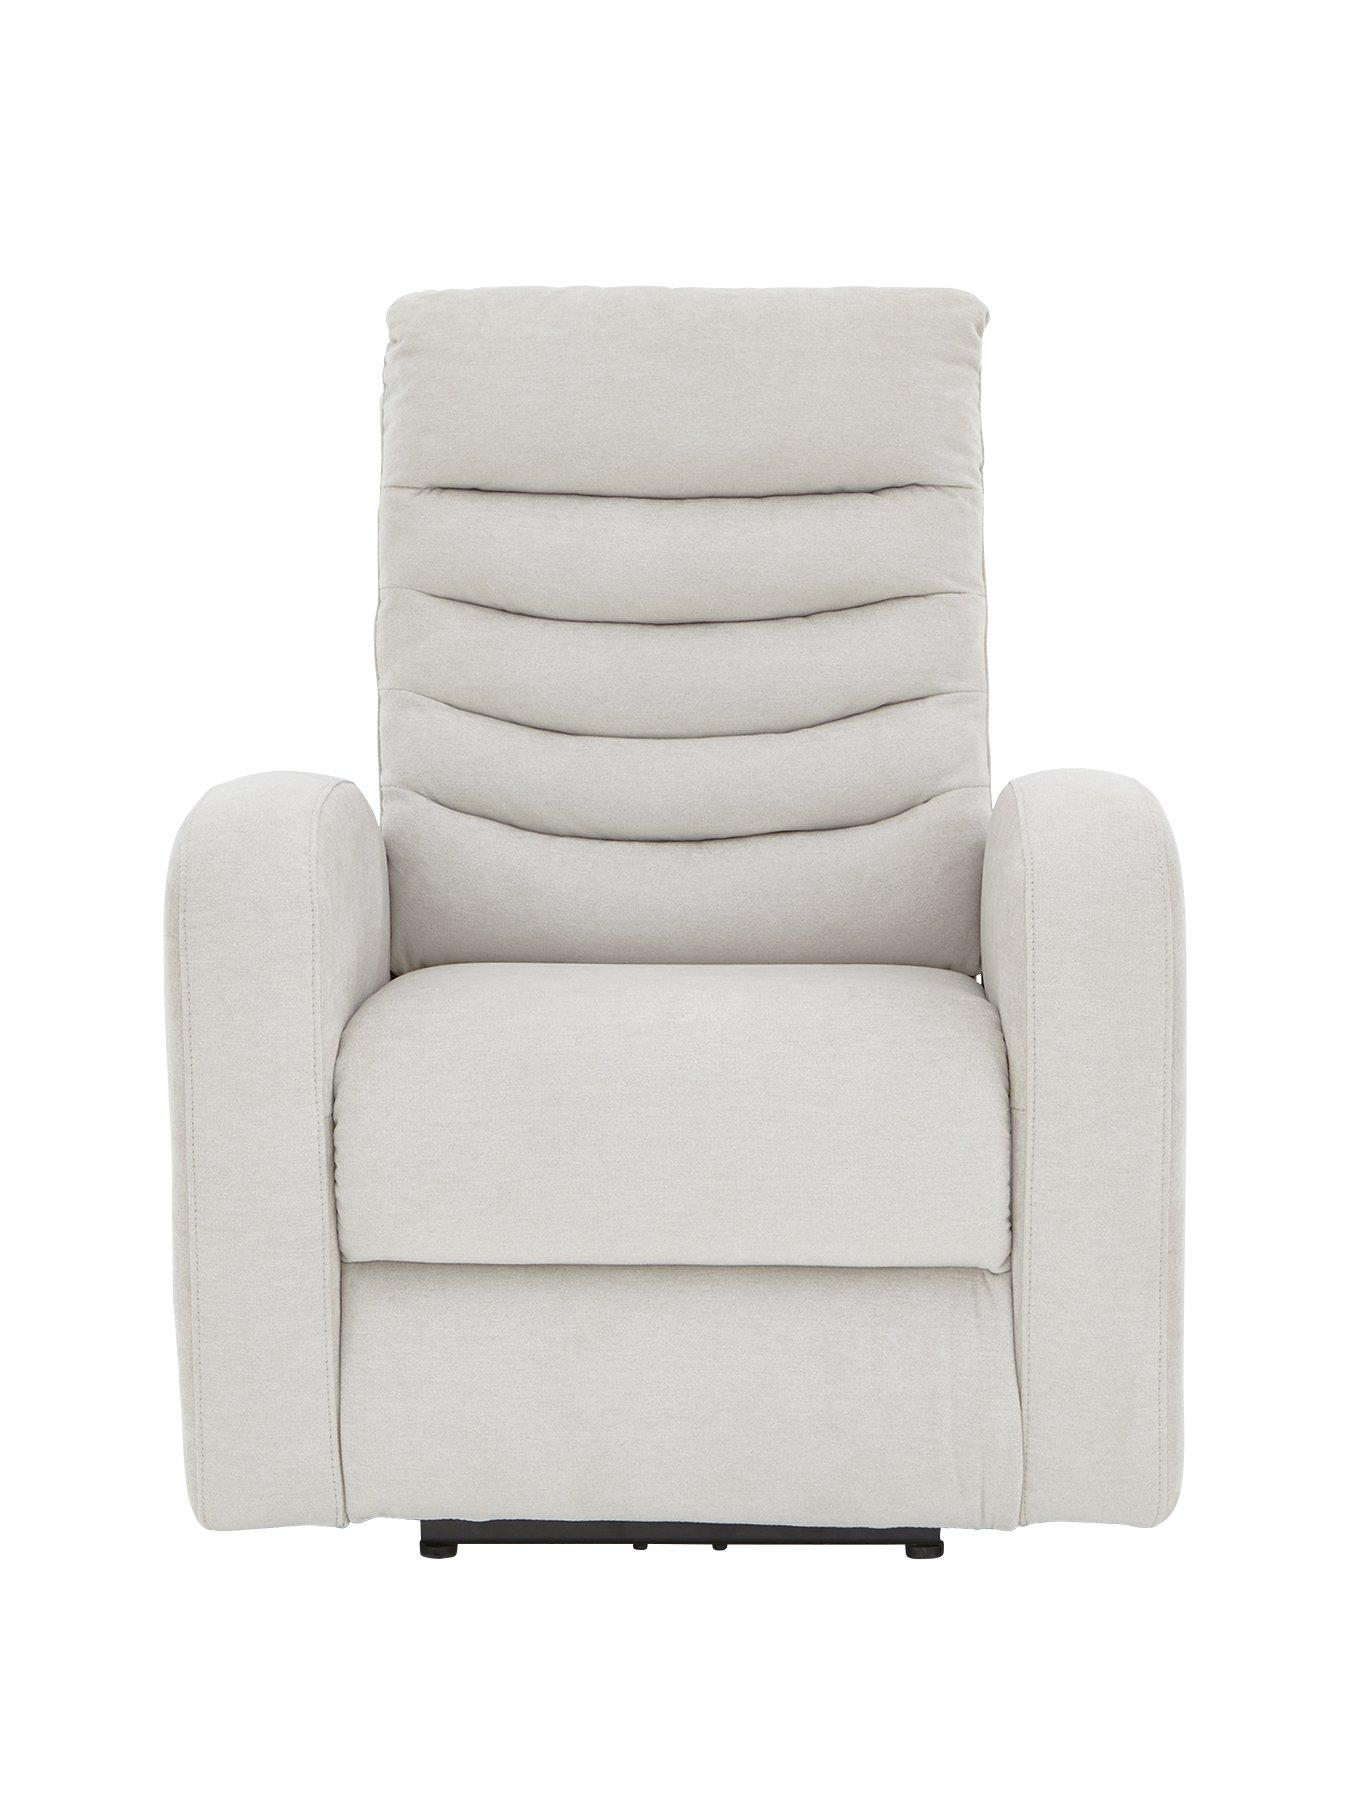 power recliner chairs uk swing chair for a bedroom savas fabric very co